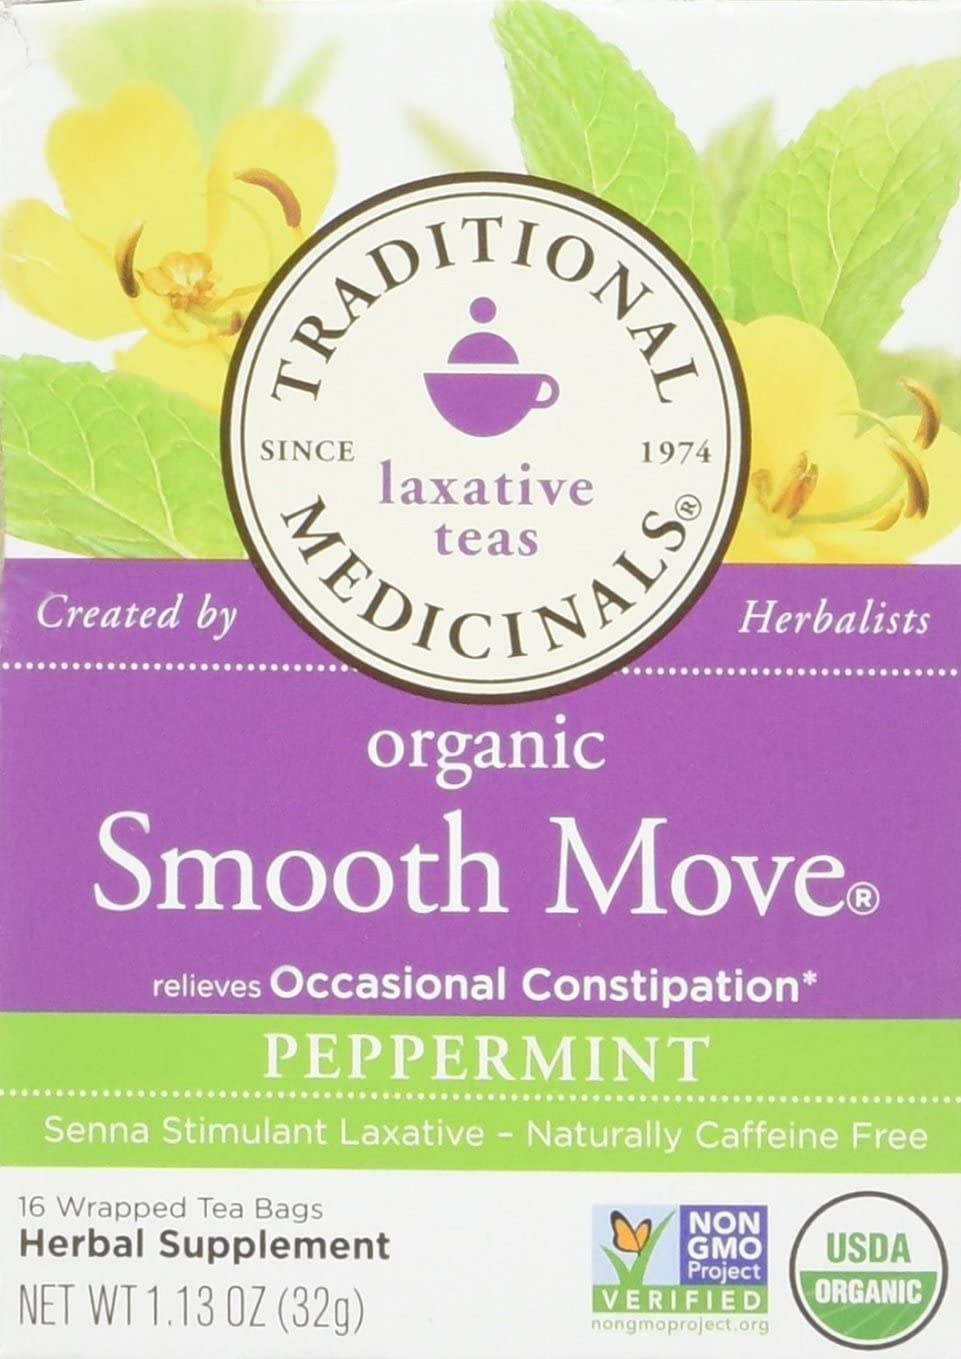 Traditional Medicinals Organic Smooth Move Peppermint Herbal Tea - 16 Tea Bags (Pack of 2)